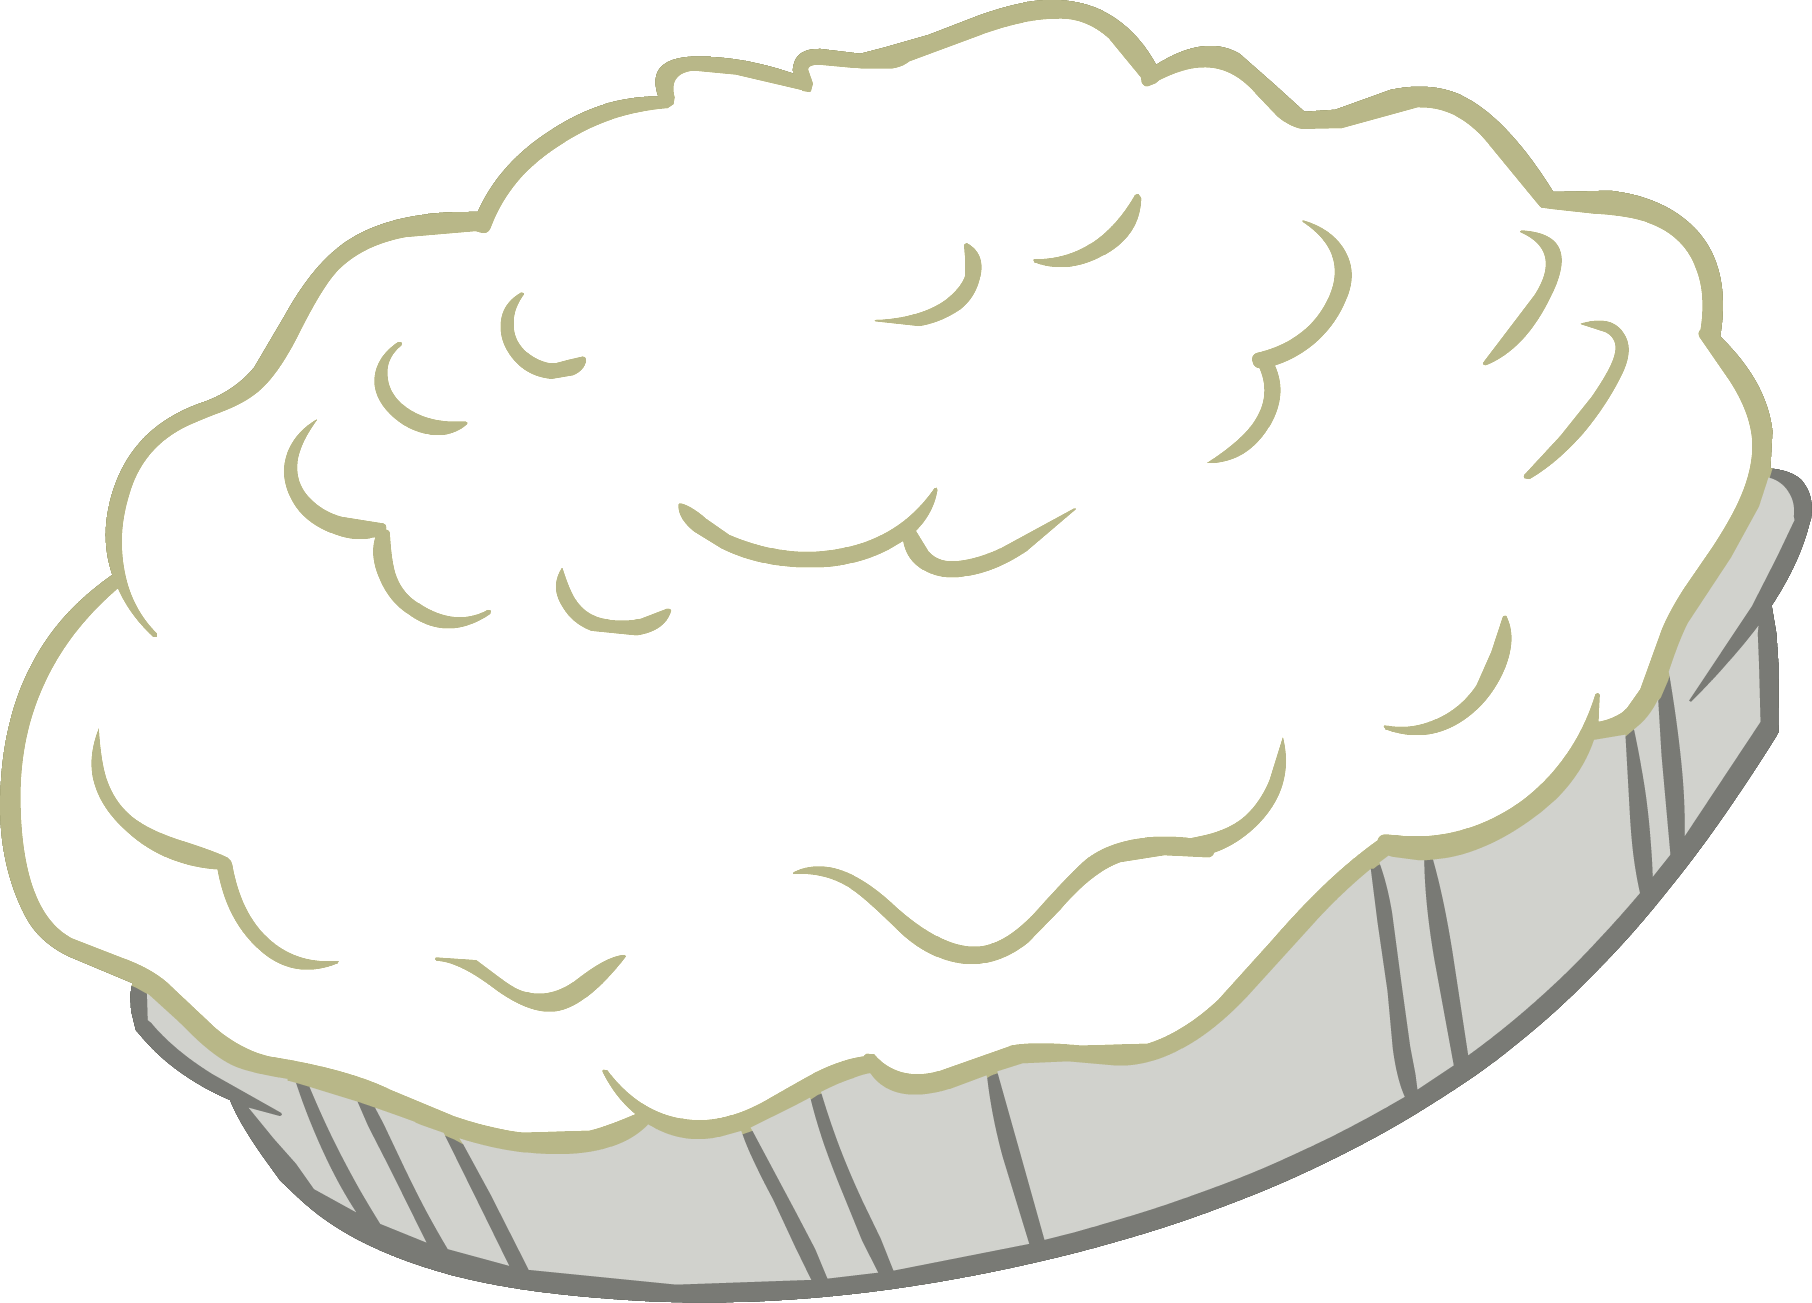 Pie Clipart Whip Cream Pie Pencil And In Color Pie.